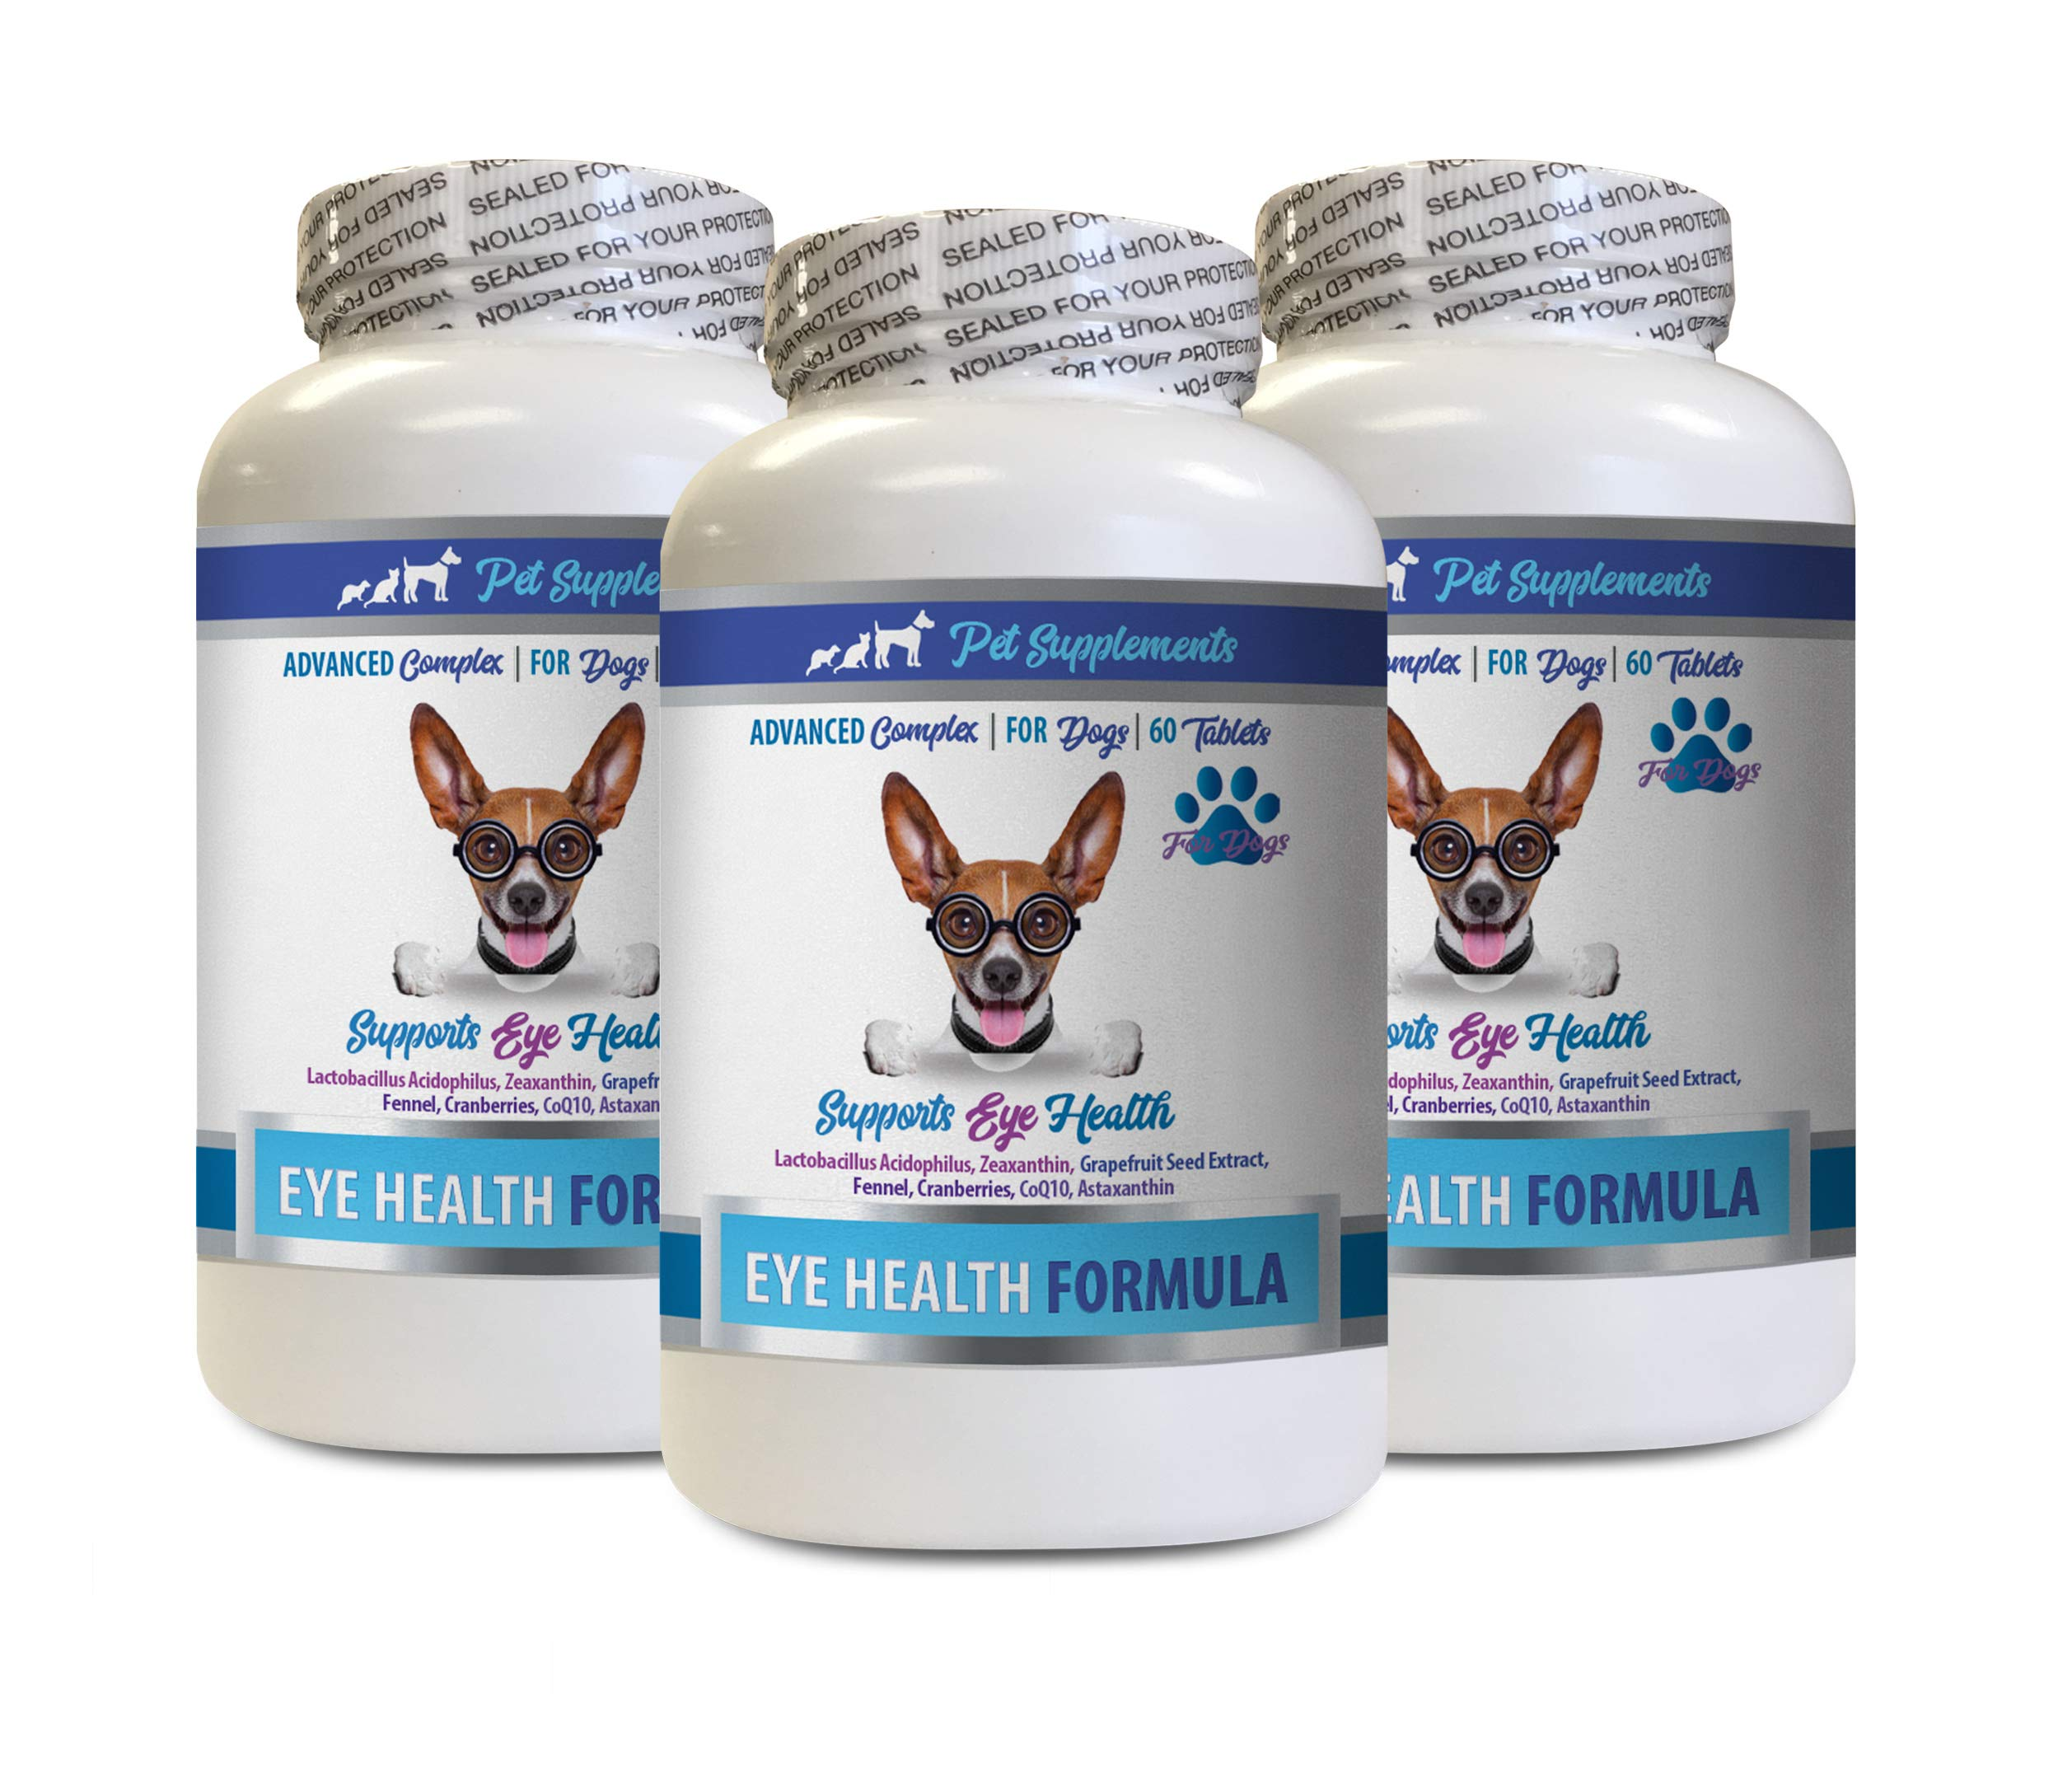 Dog Eye Health Supplements - Dogs Eye Health Formula - Advanced Eye Support Complex - VETS Recommended - Dog astaxanthin - 3 Bottles (180 Tablets) by PET SUPPLEMENTS